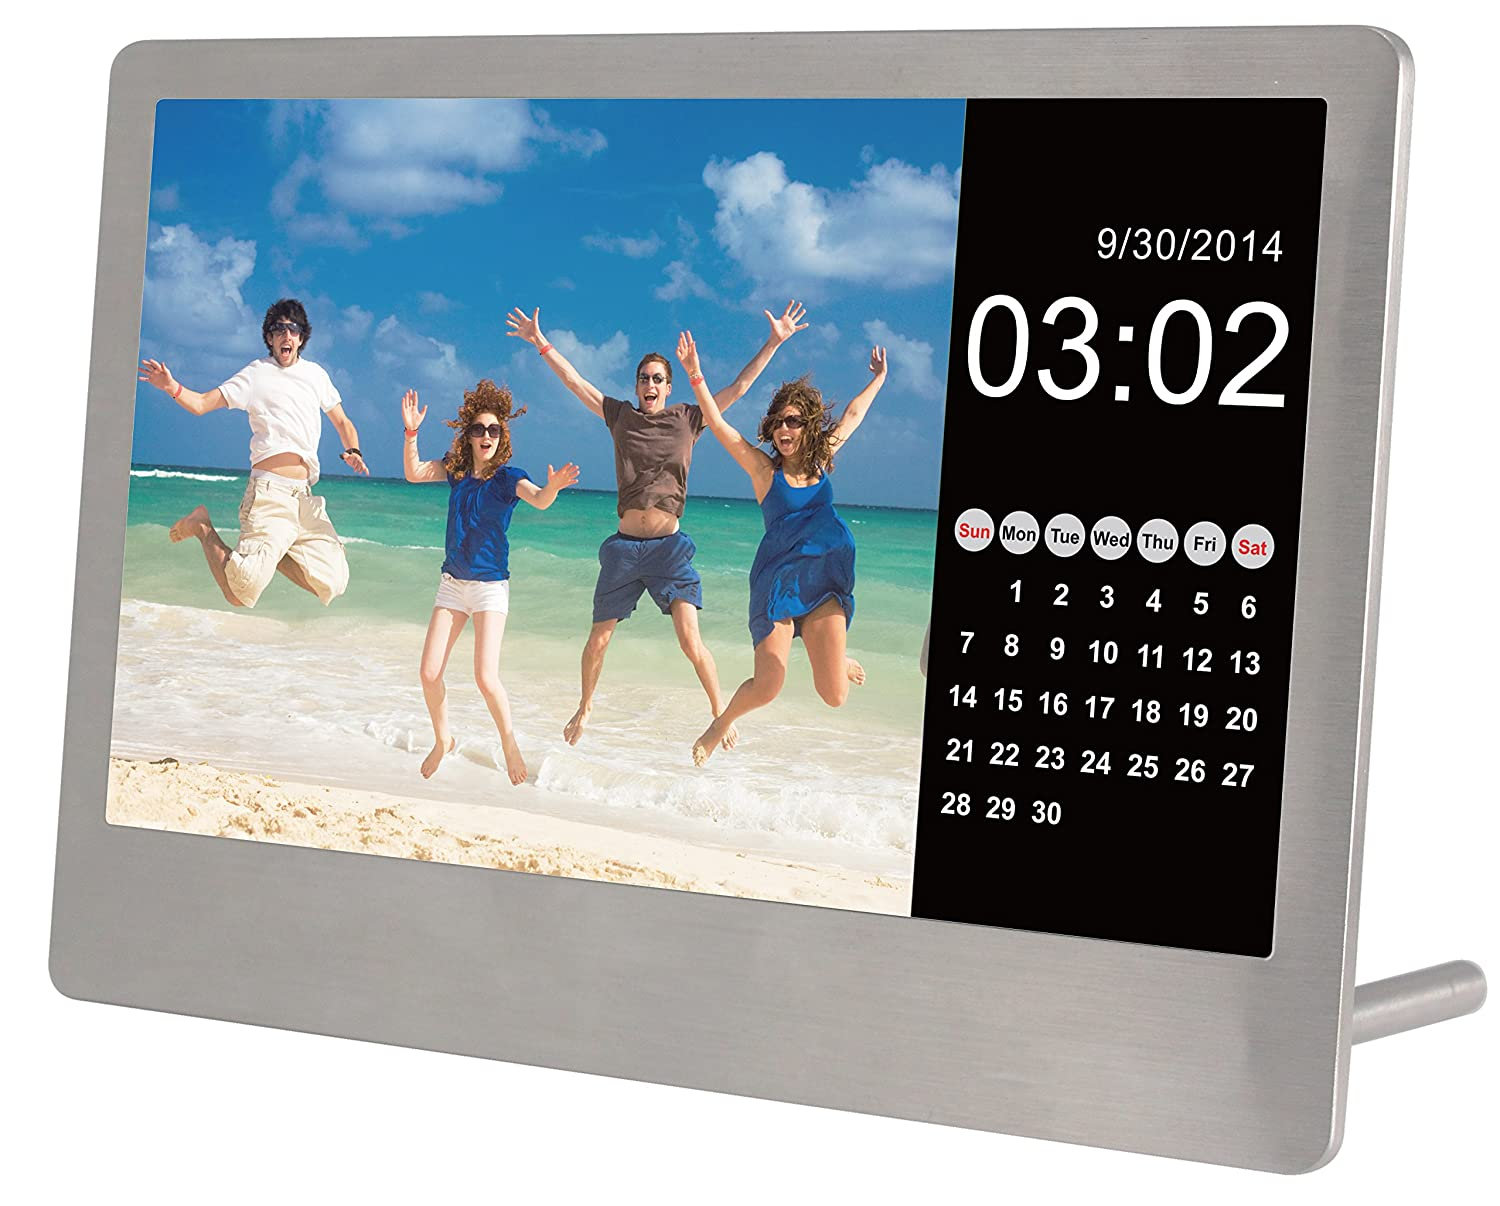 amazoncom sylvania sdpf7977 7 inch stainless steel digital photo frame stainless steel camera photo